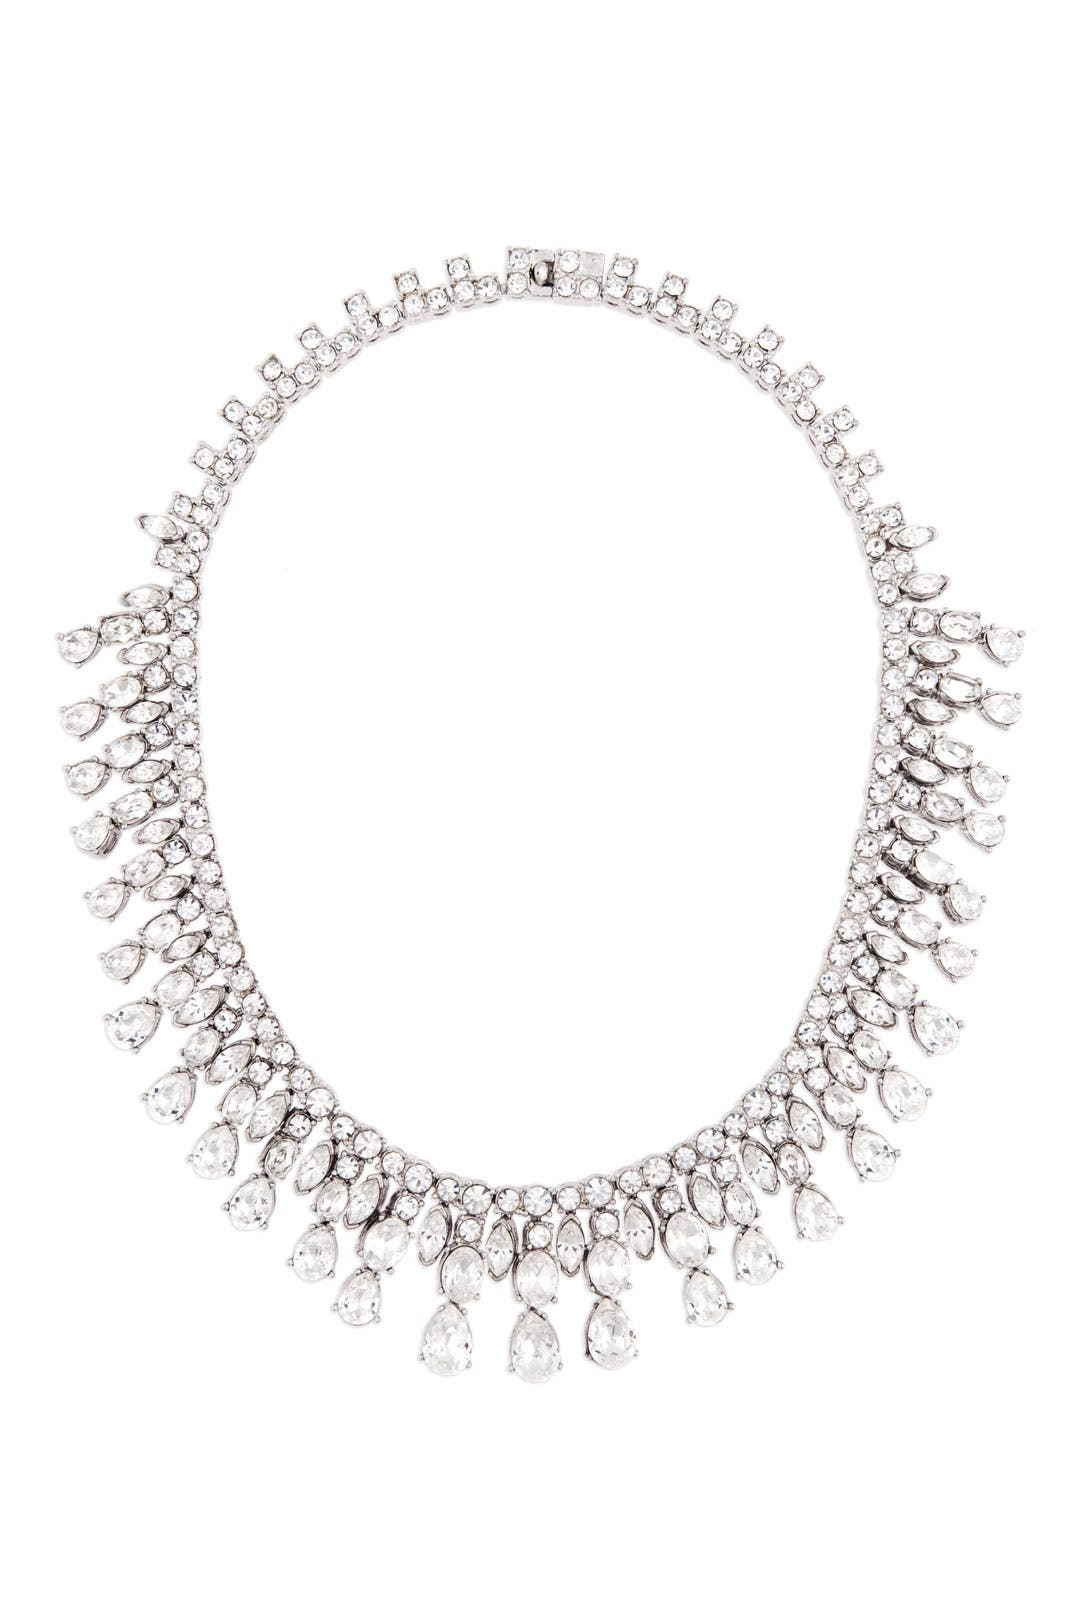 Diamond Rain Necklace by Ciner